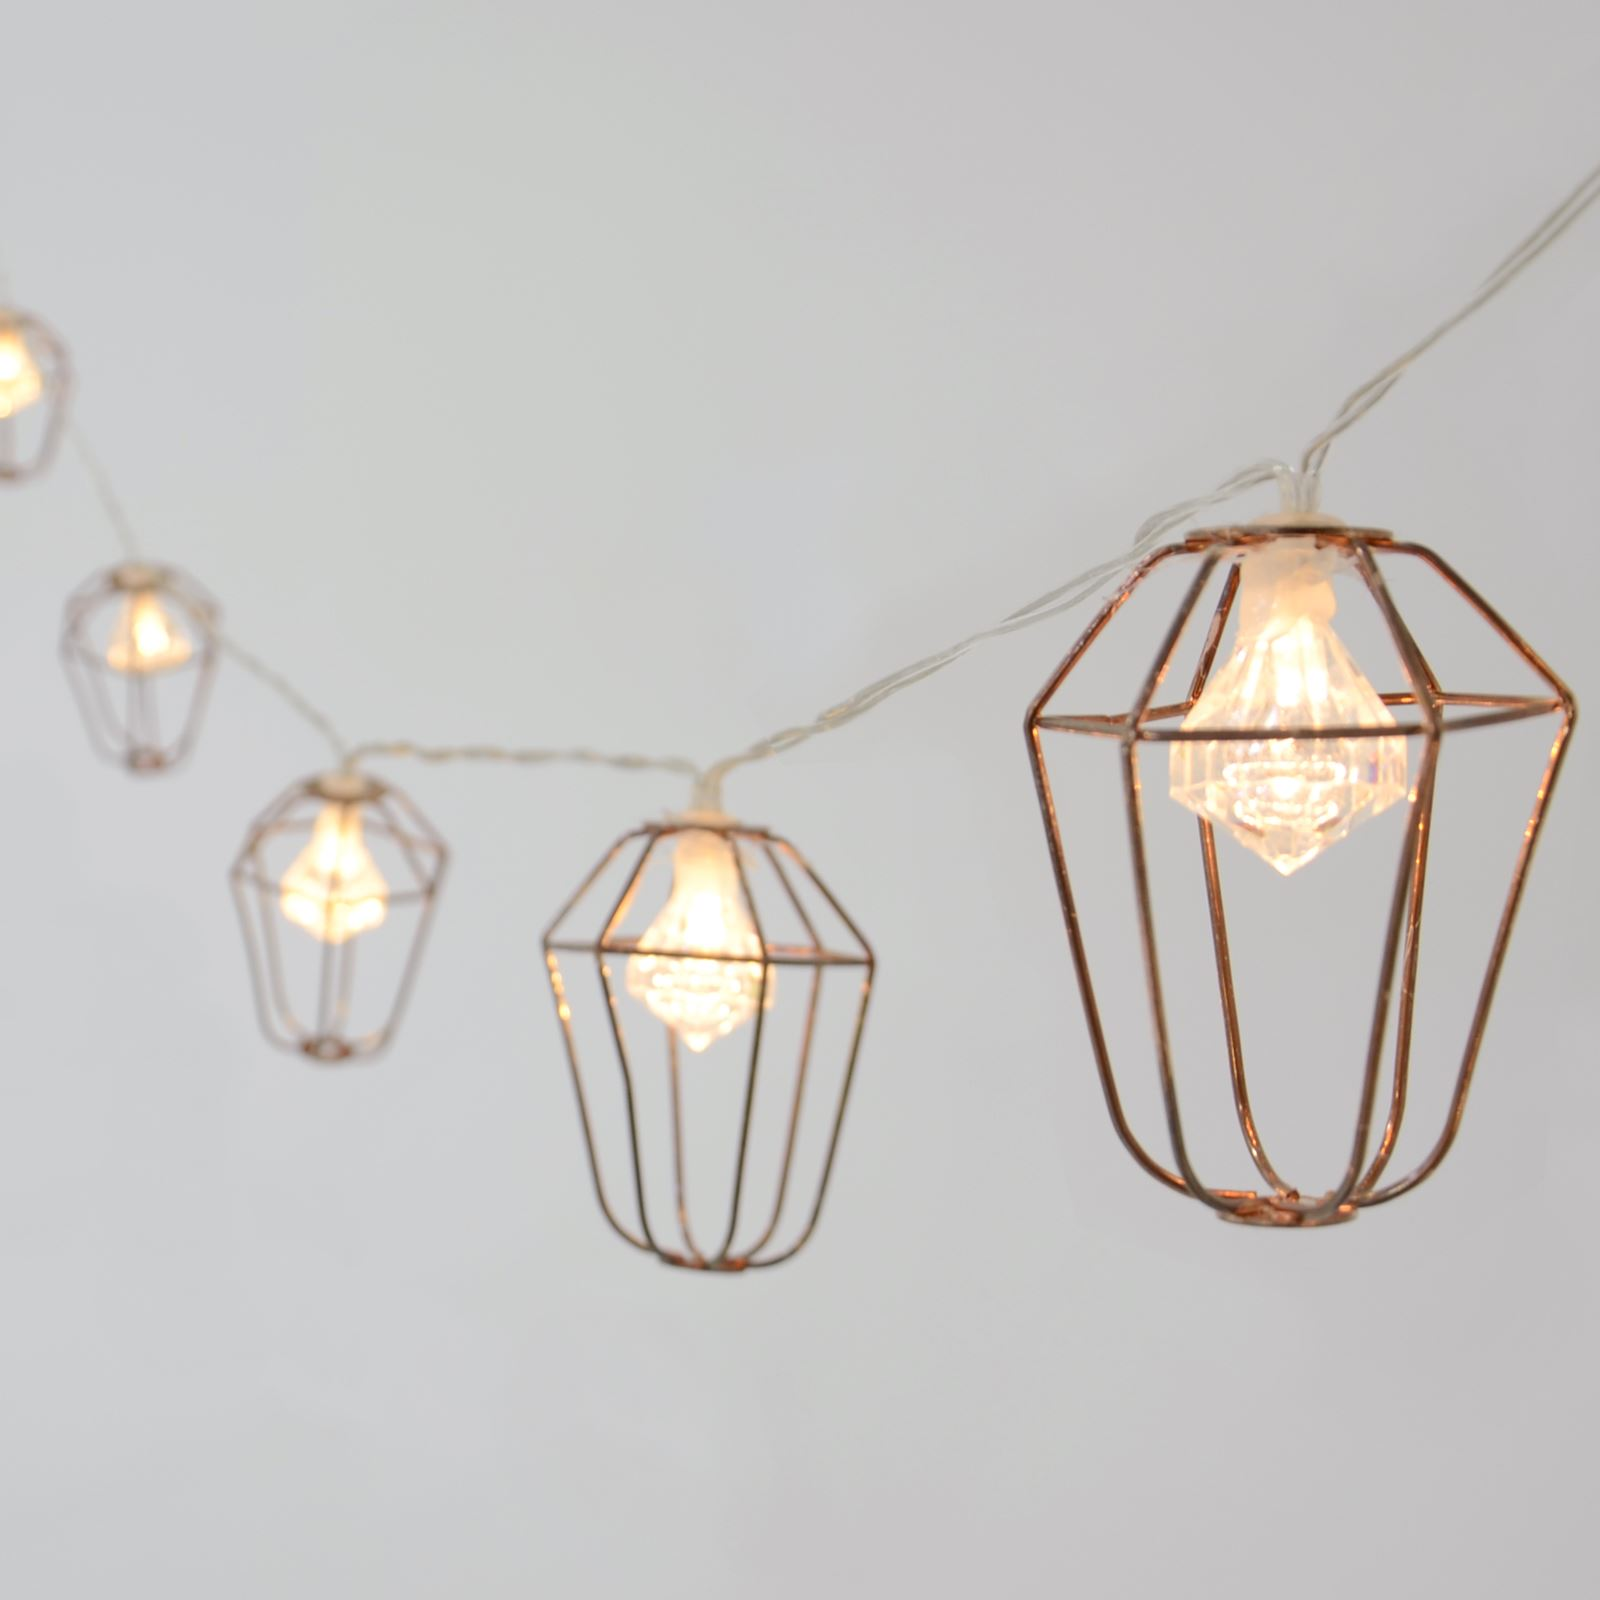 new product e541b 9267a Details about 10 Rose Gold Mini Cage Lantern String Lights With Diamond  Shaped LED Bulbs Xmas